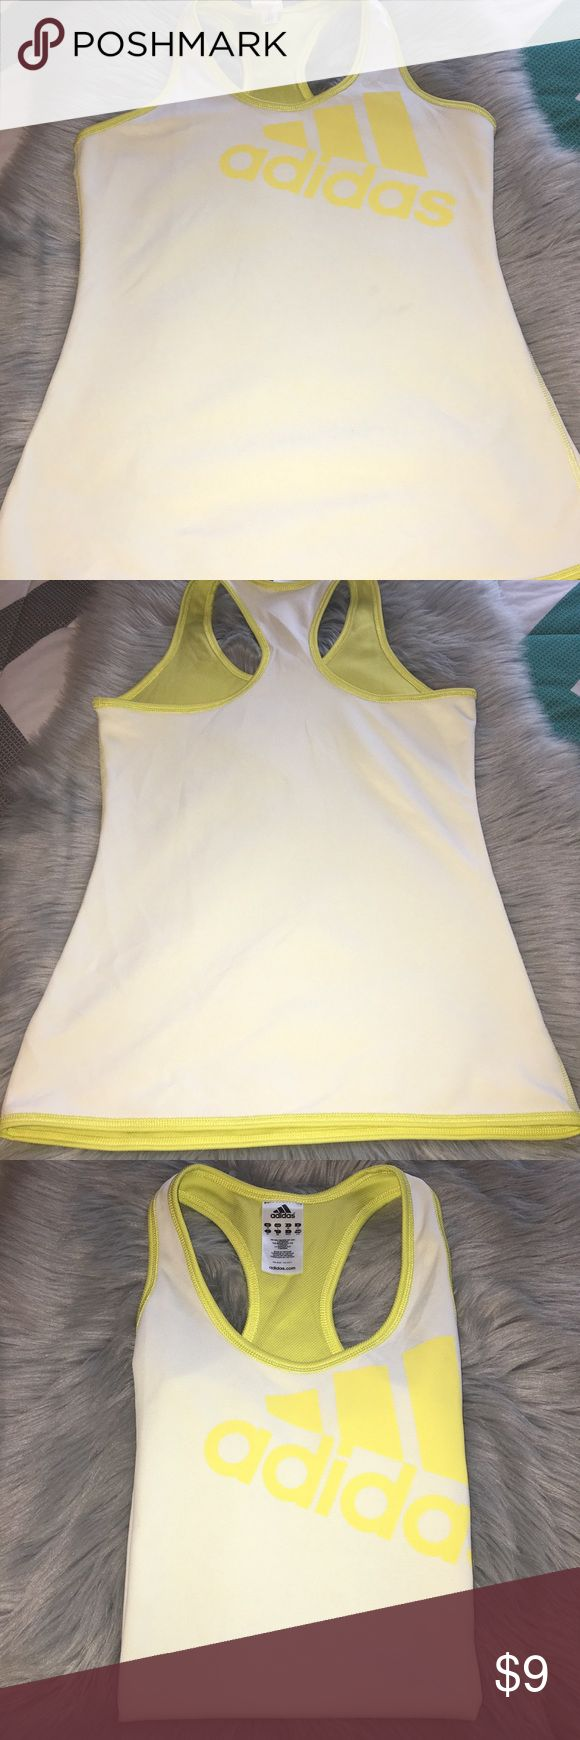 ⭐️Adidas Tank Top Workout Shirt⭐️ Gently worn with no holes nor tears adidas workout tank top. Adidas Tops Tank Tops